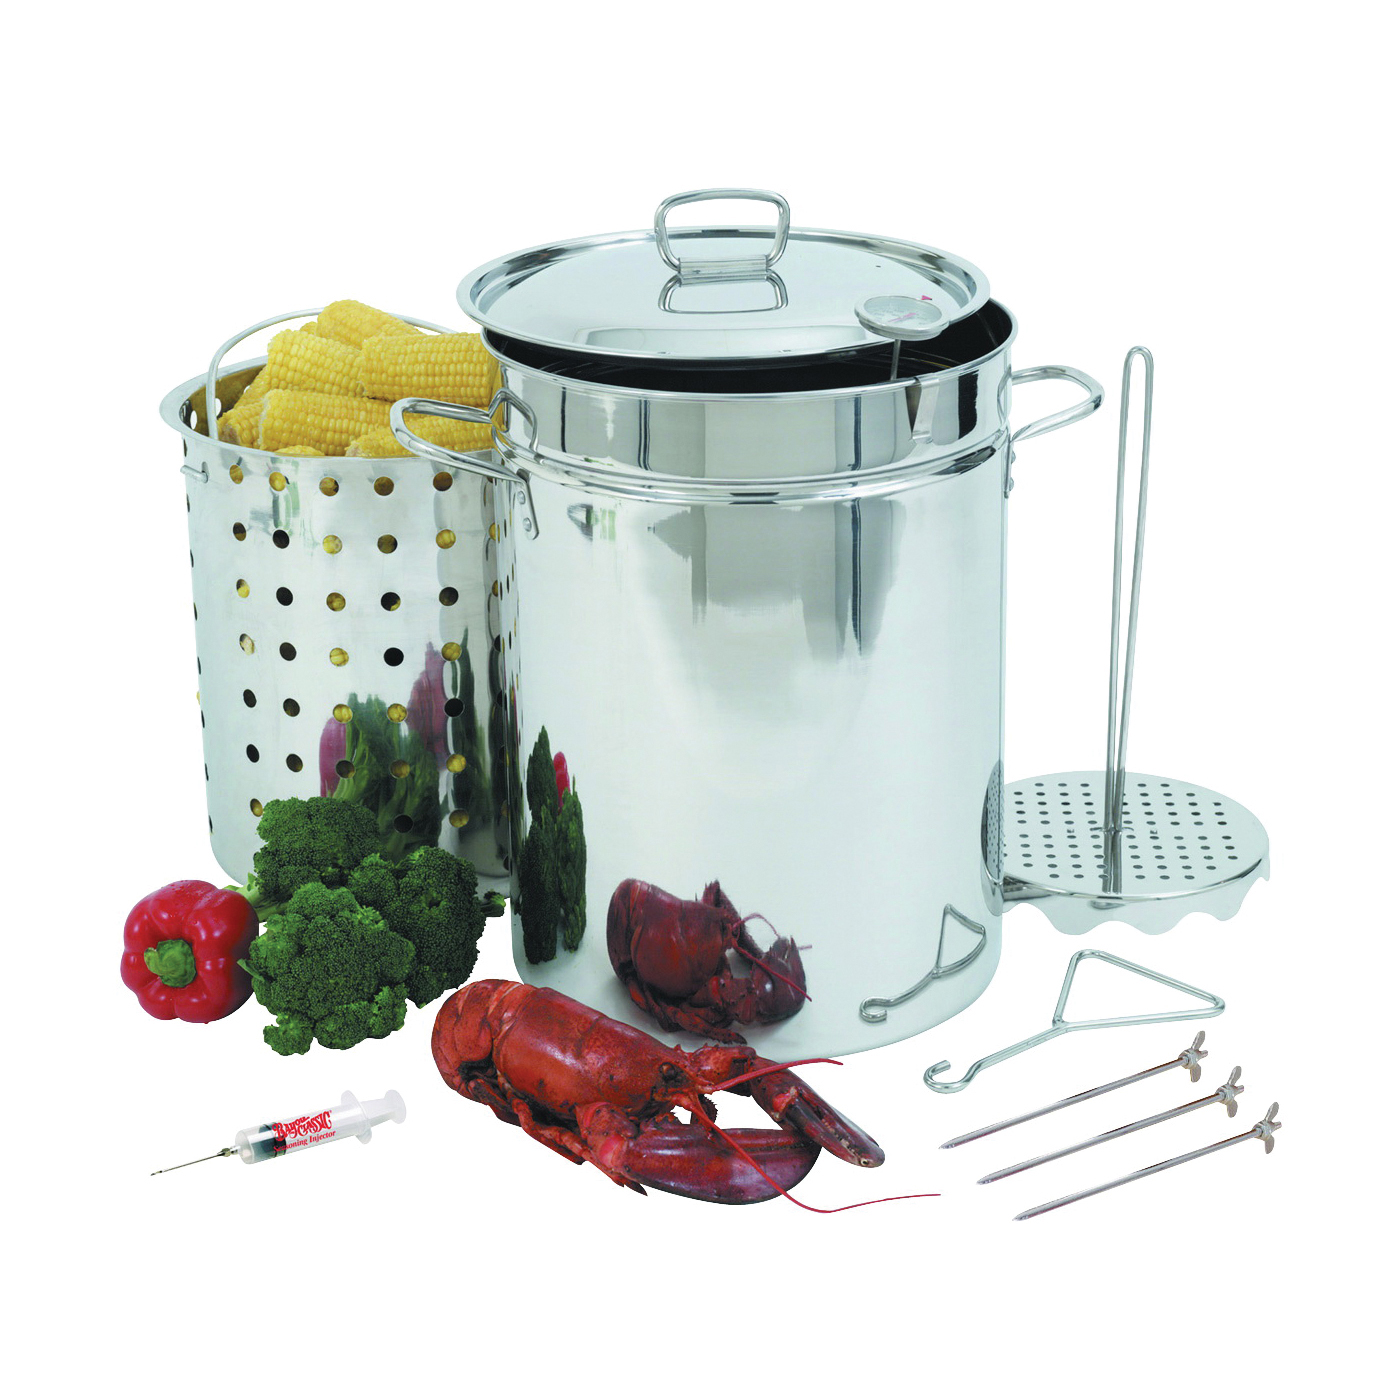 Picture of Bayou Classic 1118 Turkey Fryer Pot, 32 qt Capacity, 22 Gauge, Stainless Steel